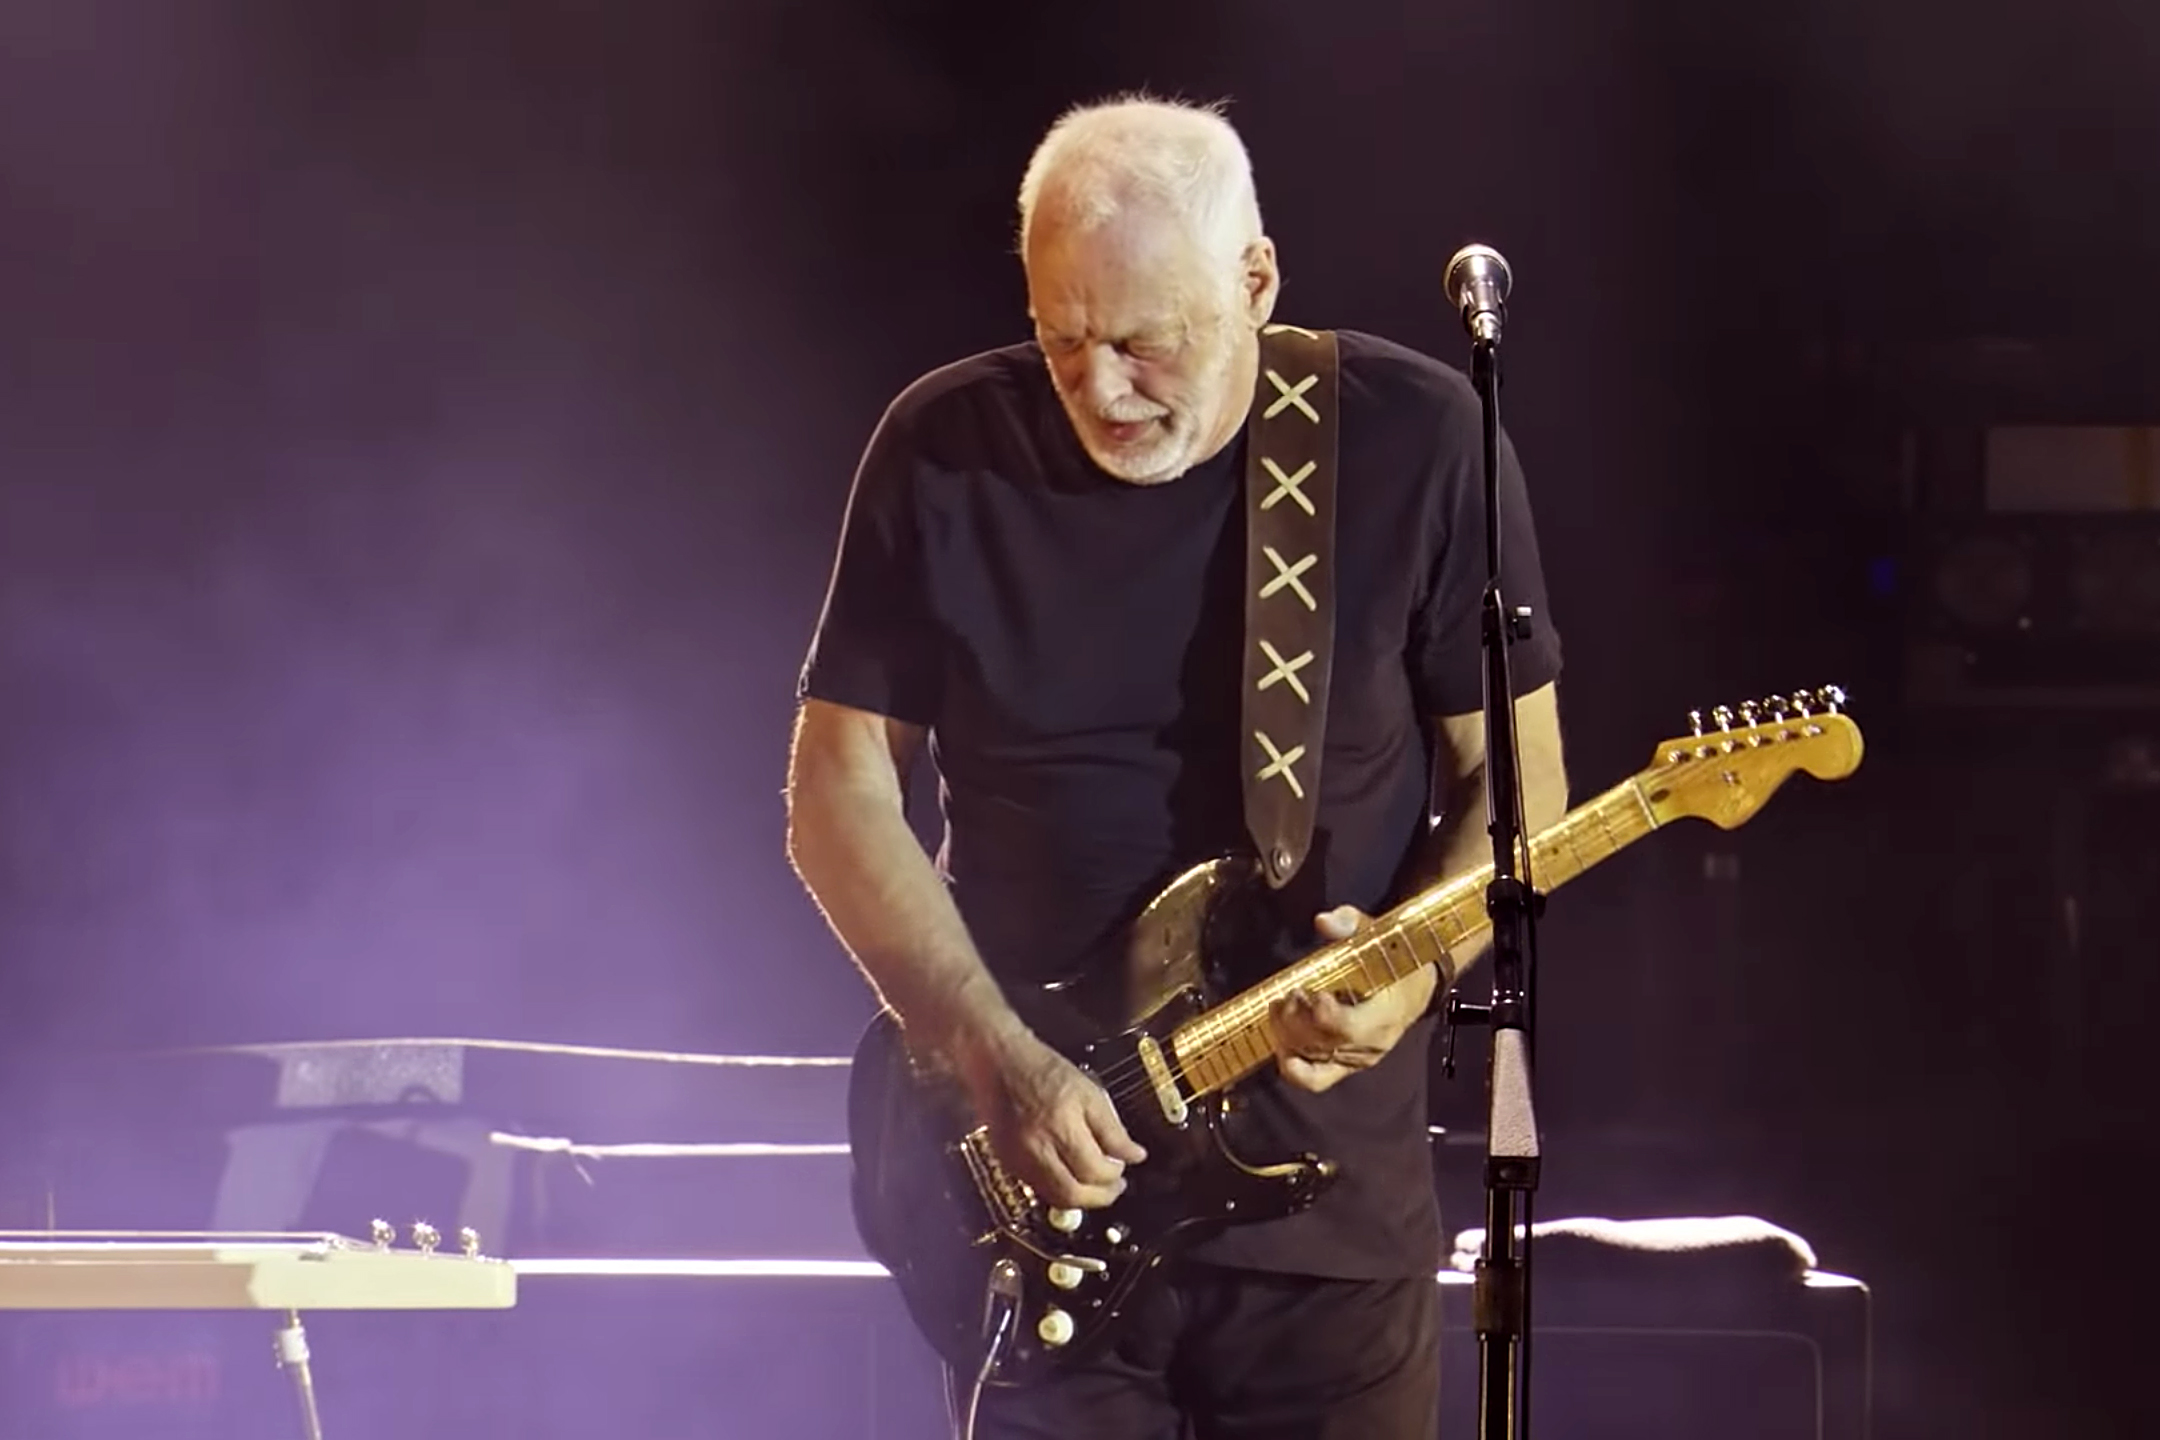 See David Gilmour Play Wish You Were Here On Guitar Hes Selling Rolling Stone